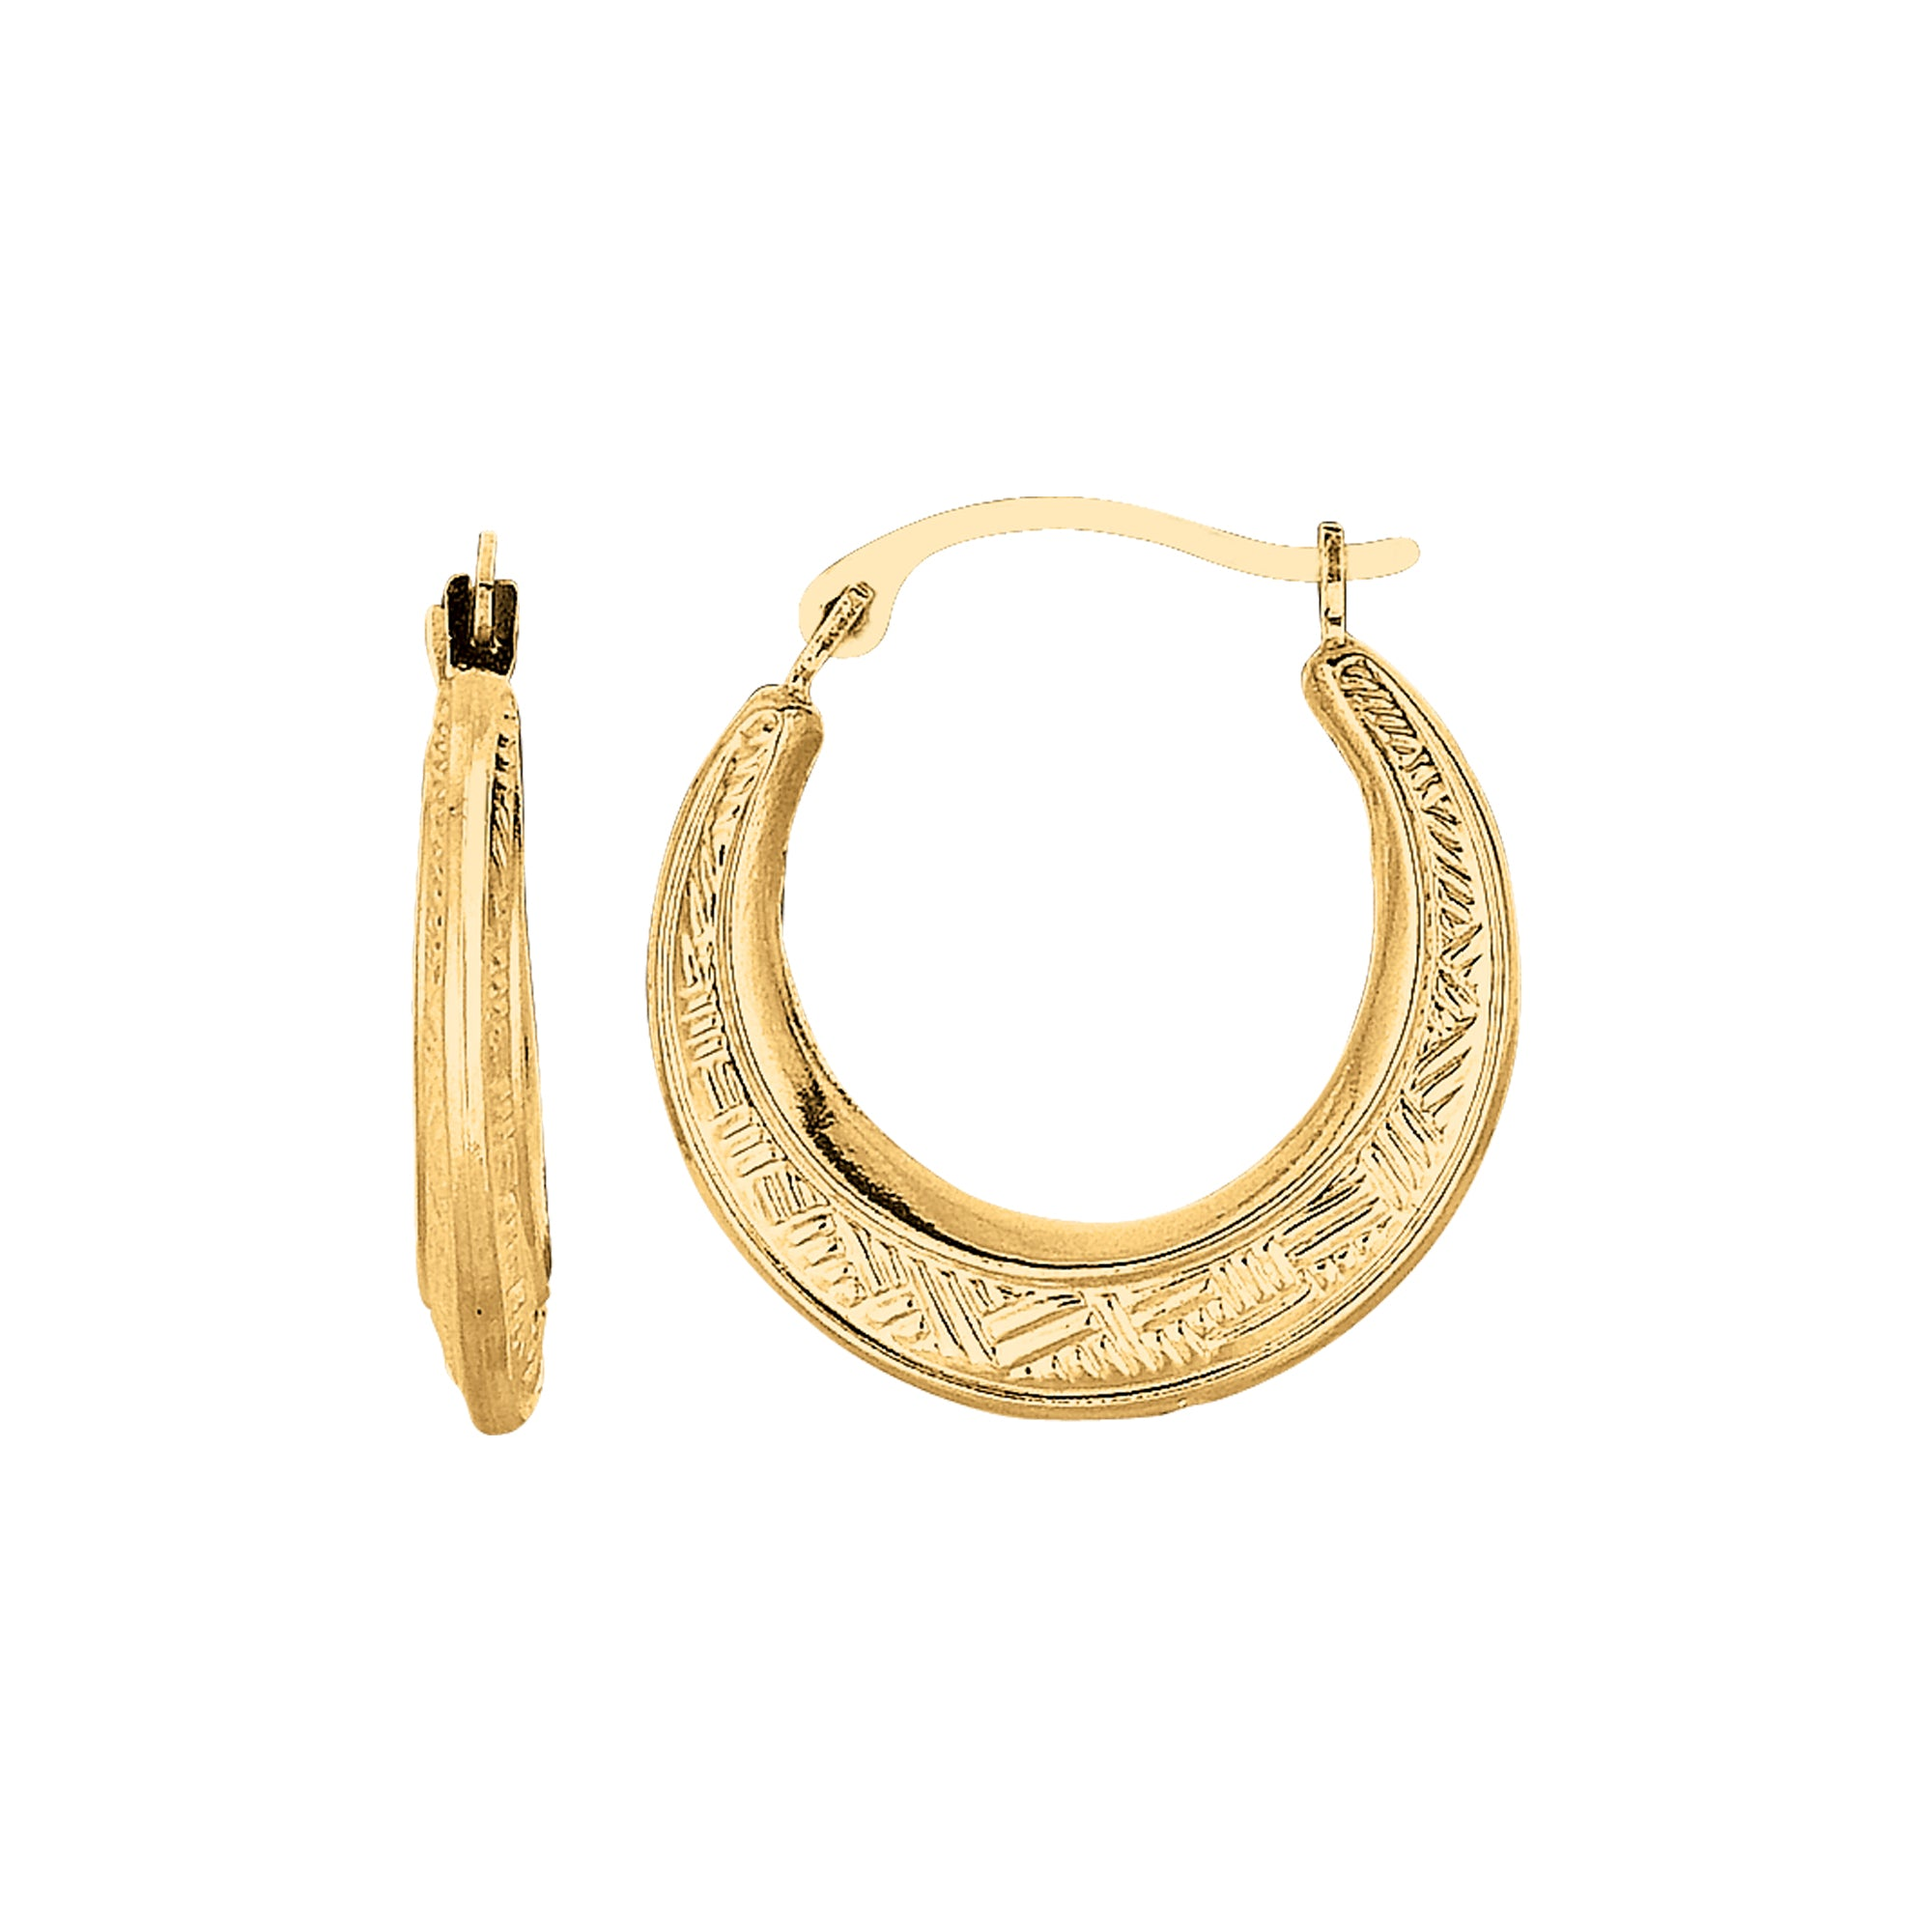 10K Gold Diamond Cut Etched Pattern Hoop Earring